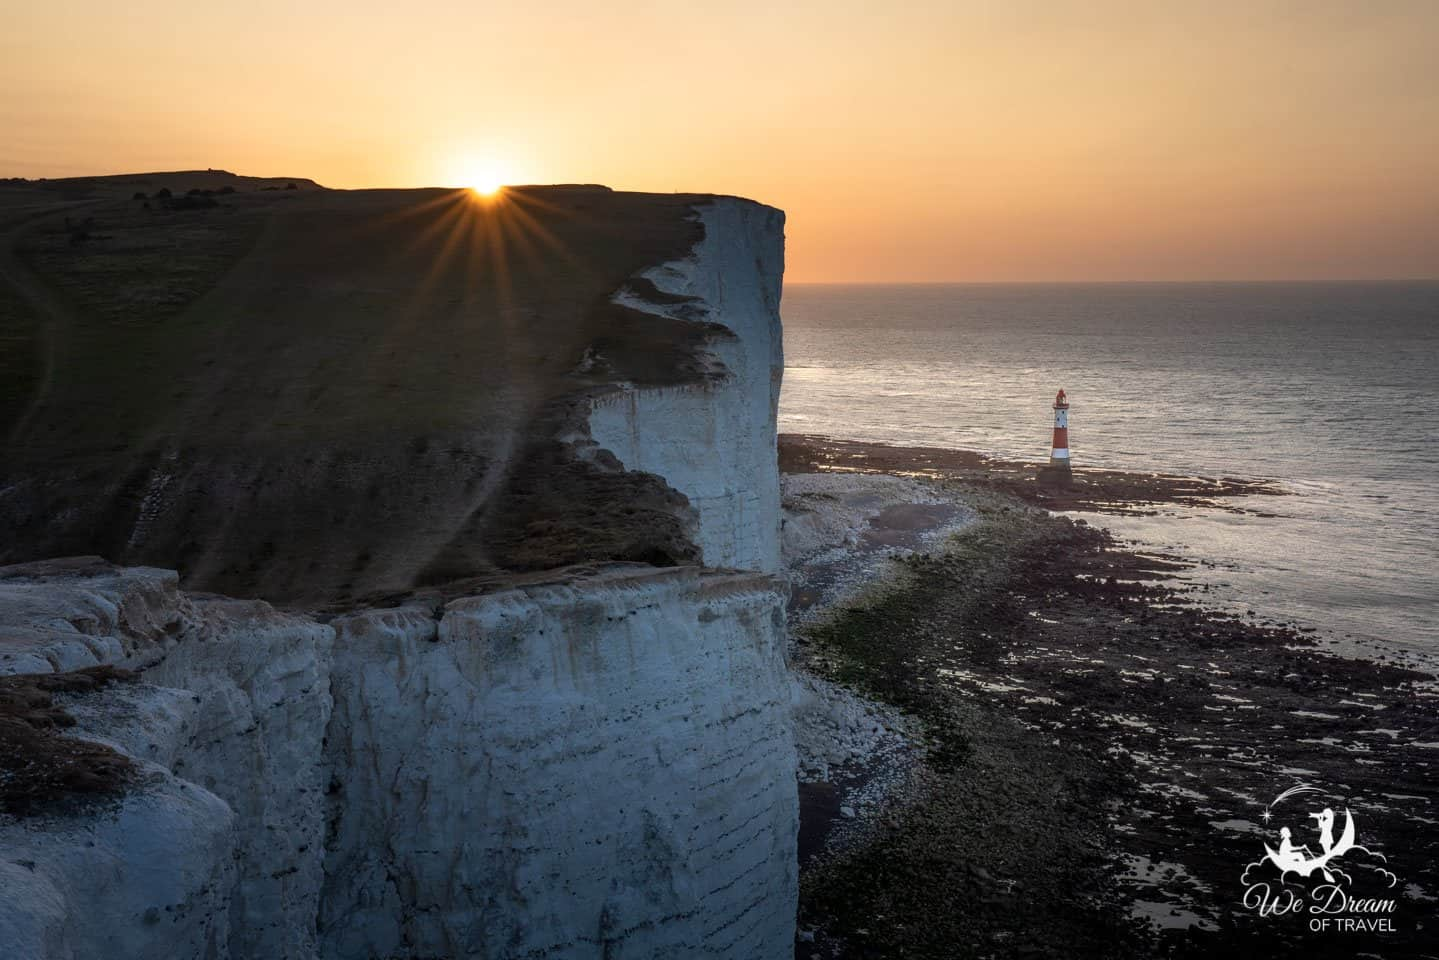 The rising sun peaks over the white cliffs at the Beachy Head Lighthouse at sunrise.